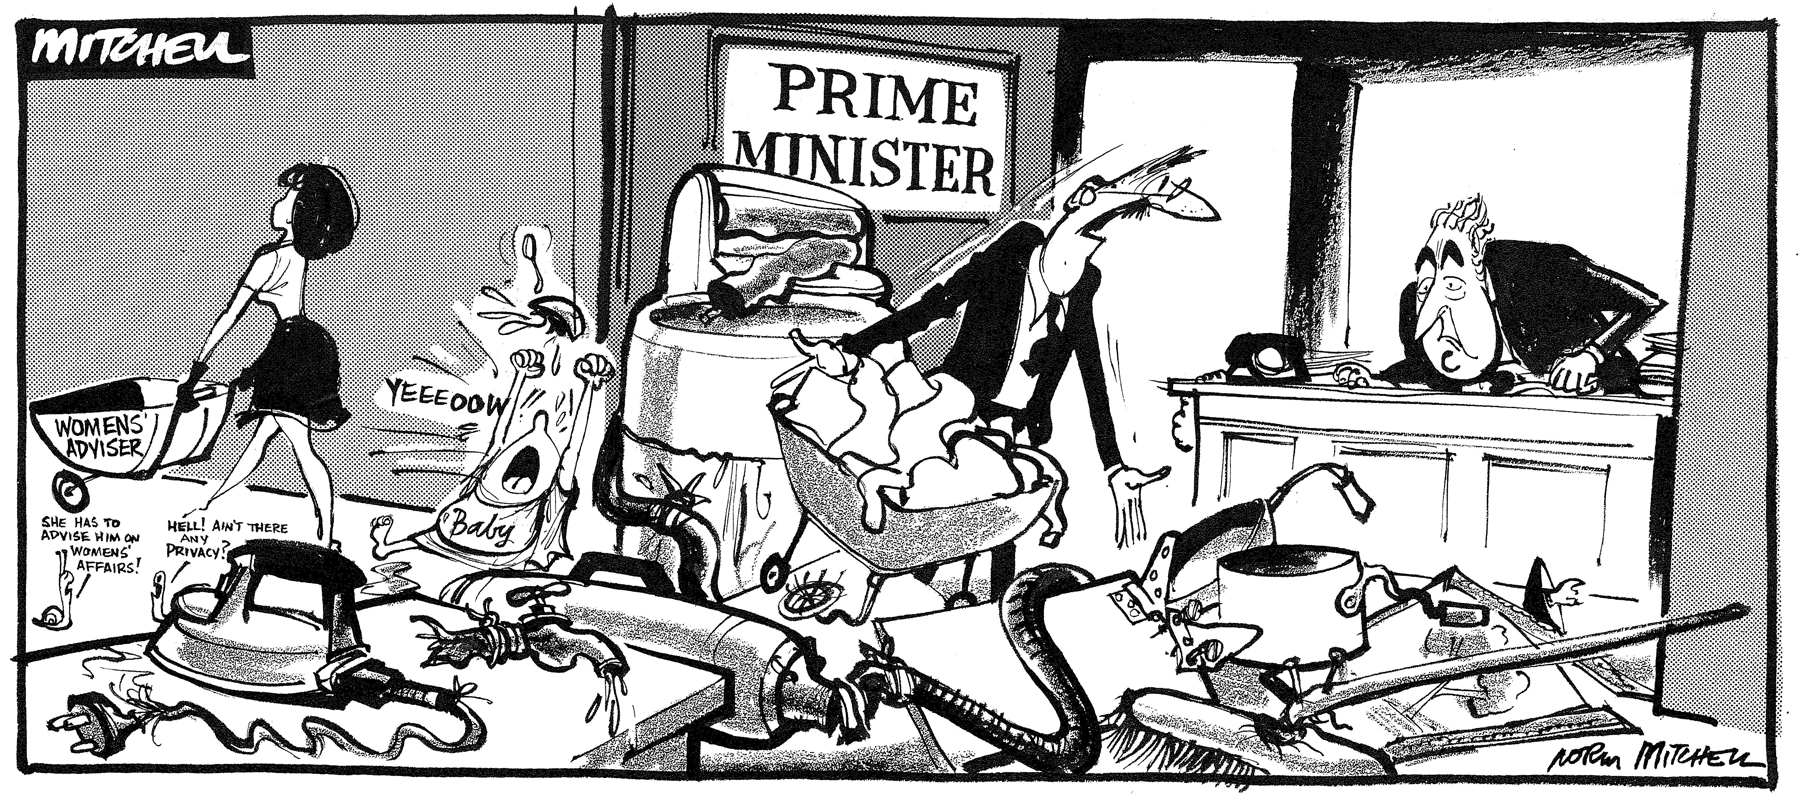 Women's Adviser Cartoon by Norman Mitchell published 11 April 1973